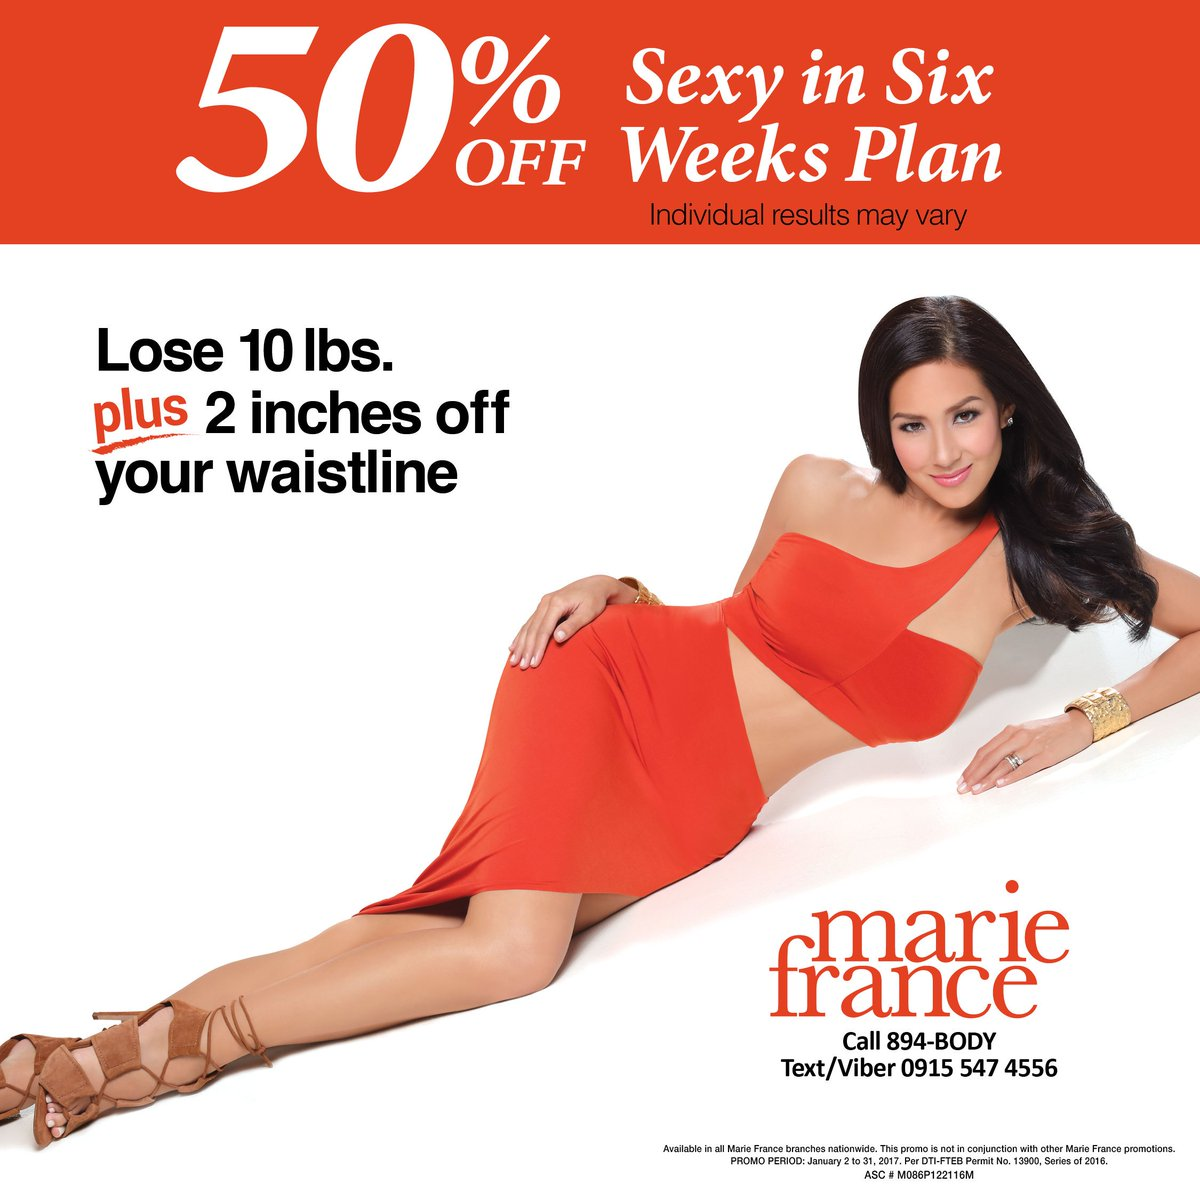 Marie France Philippines On Twitter Lose 10 Lbs 2 Inches Off